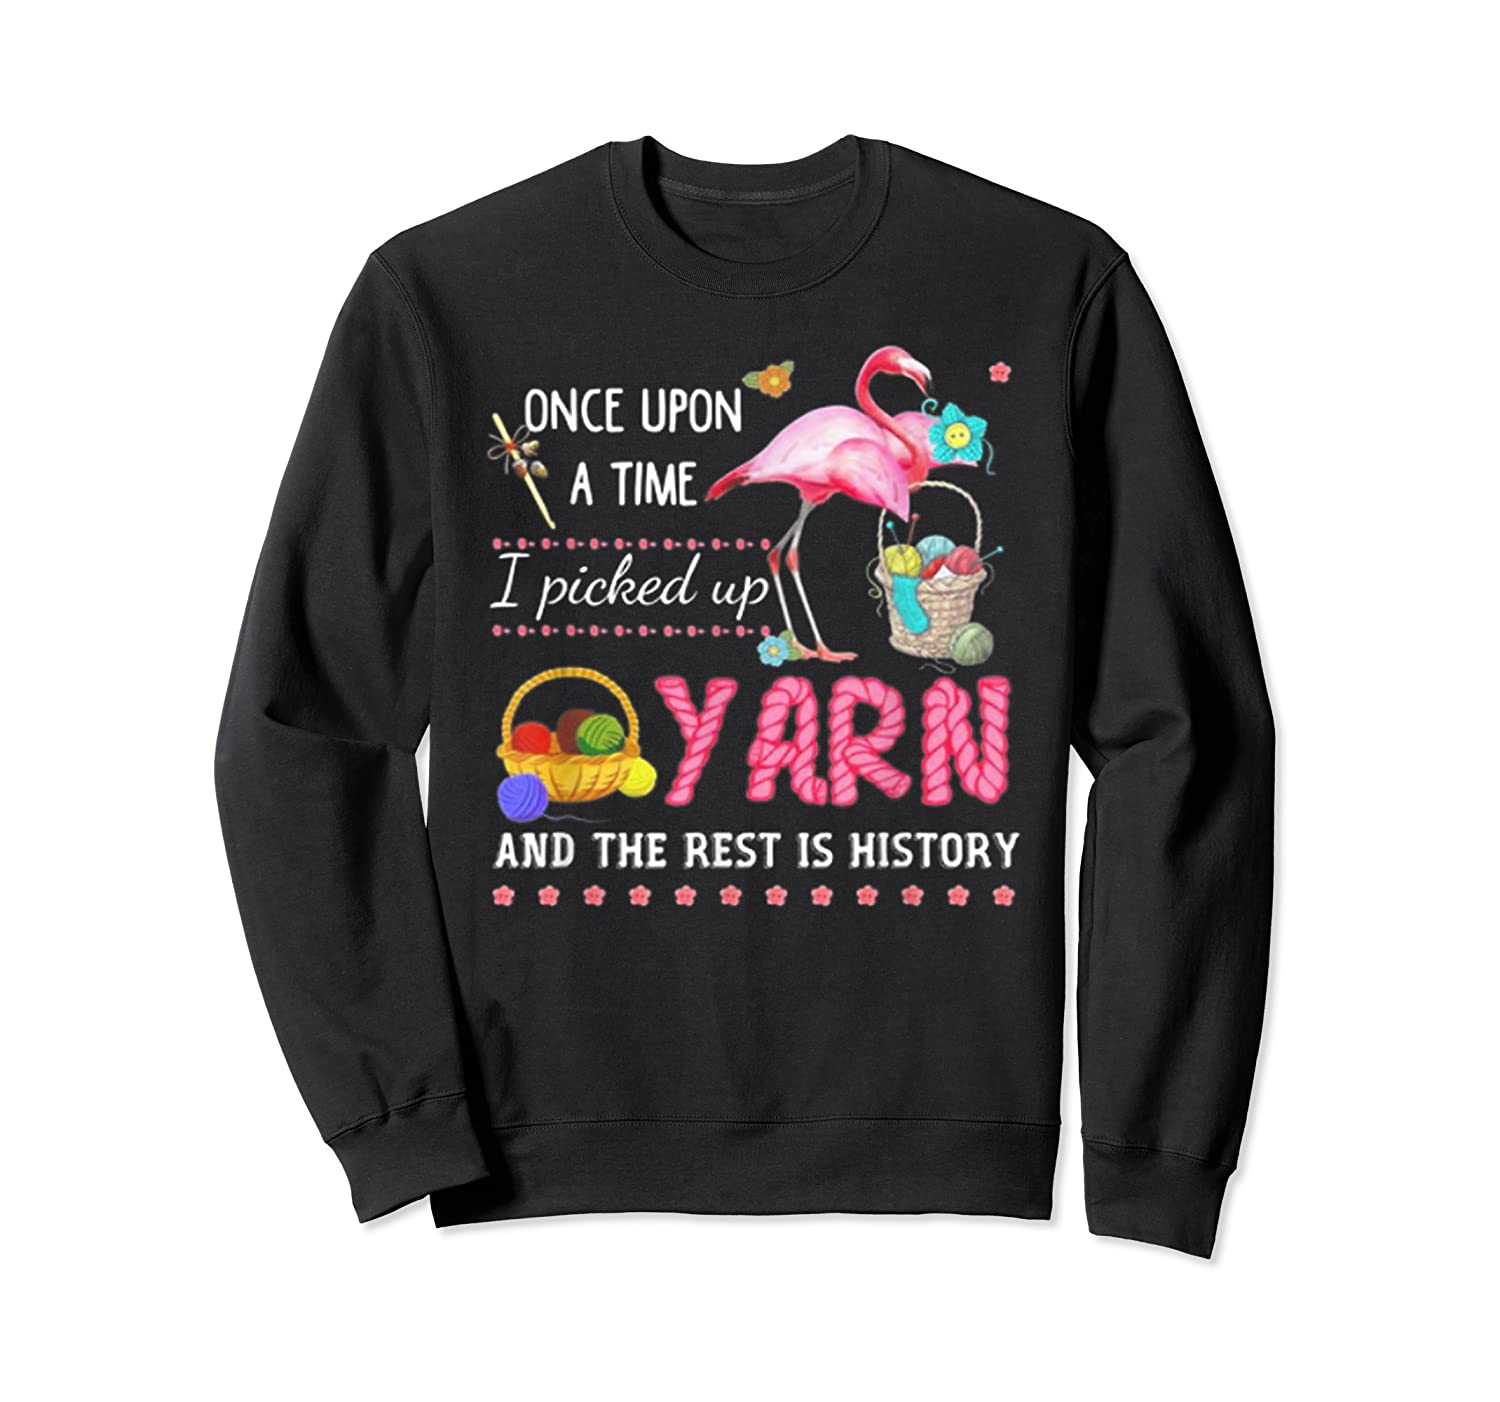 Once Upon A Time I Pickep Up Yarn And The Rest Is History Shirts Crewneck Sweater